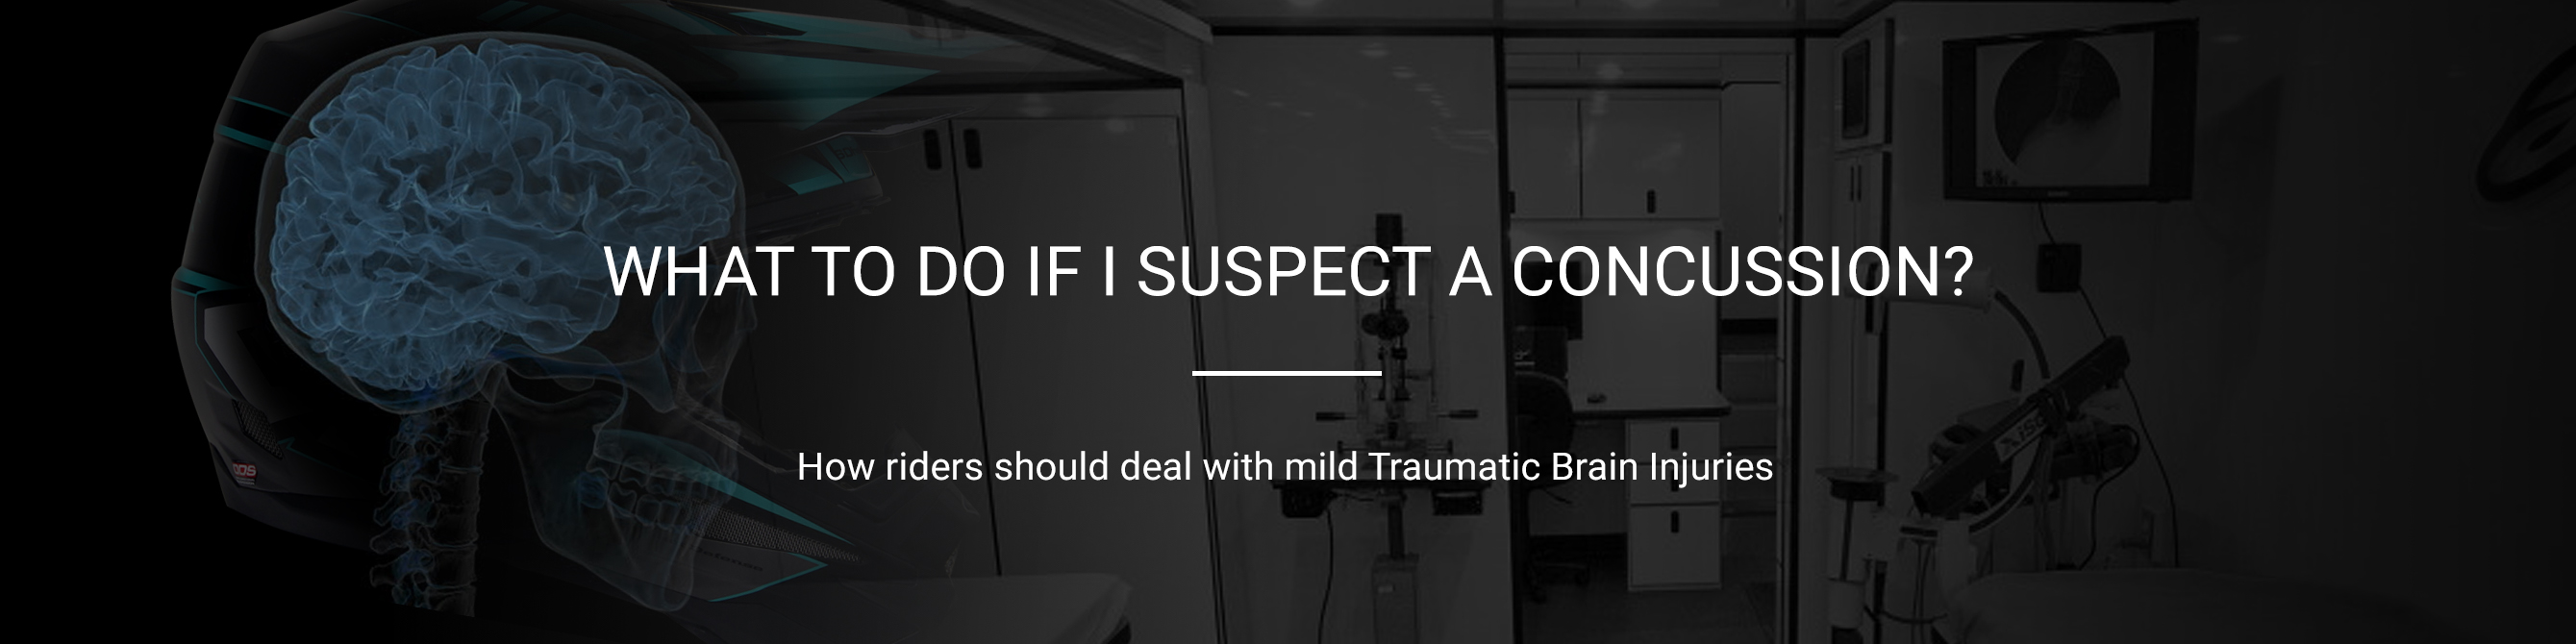 What to do if I suspect a concussion